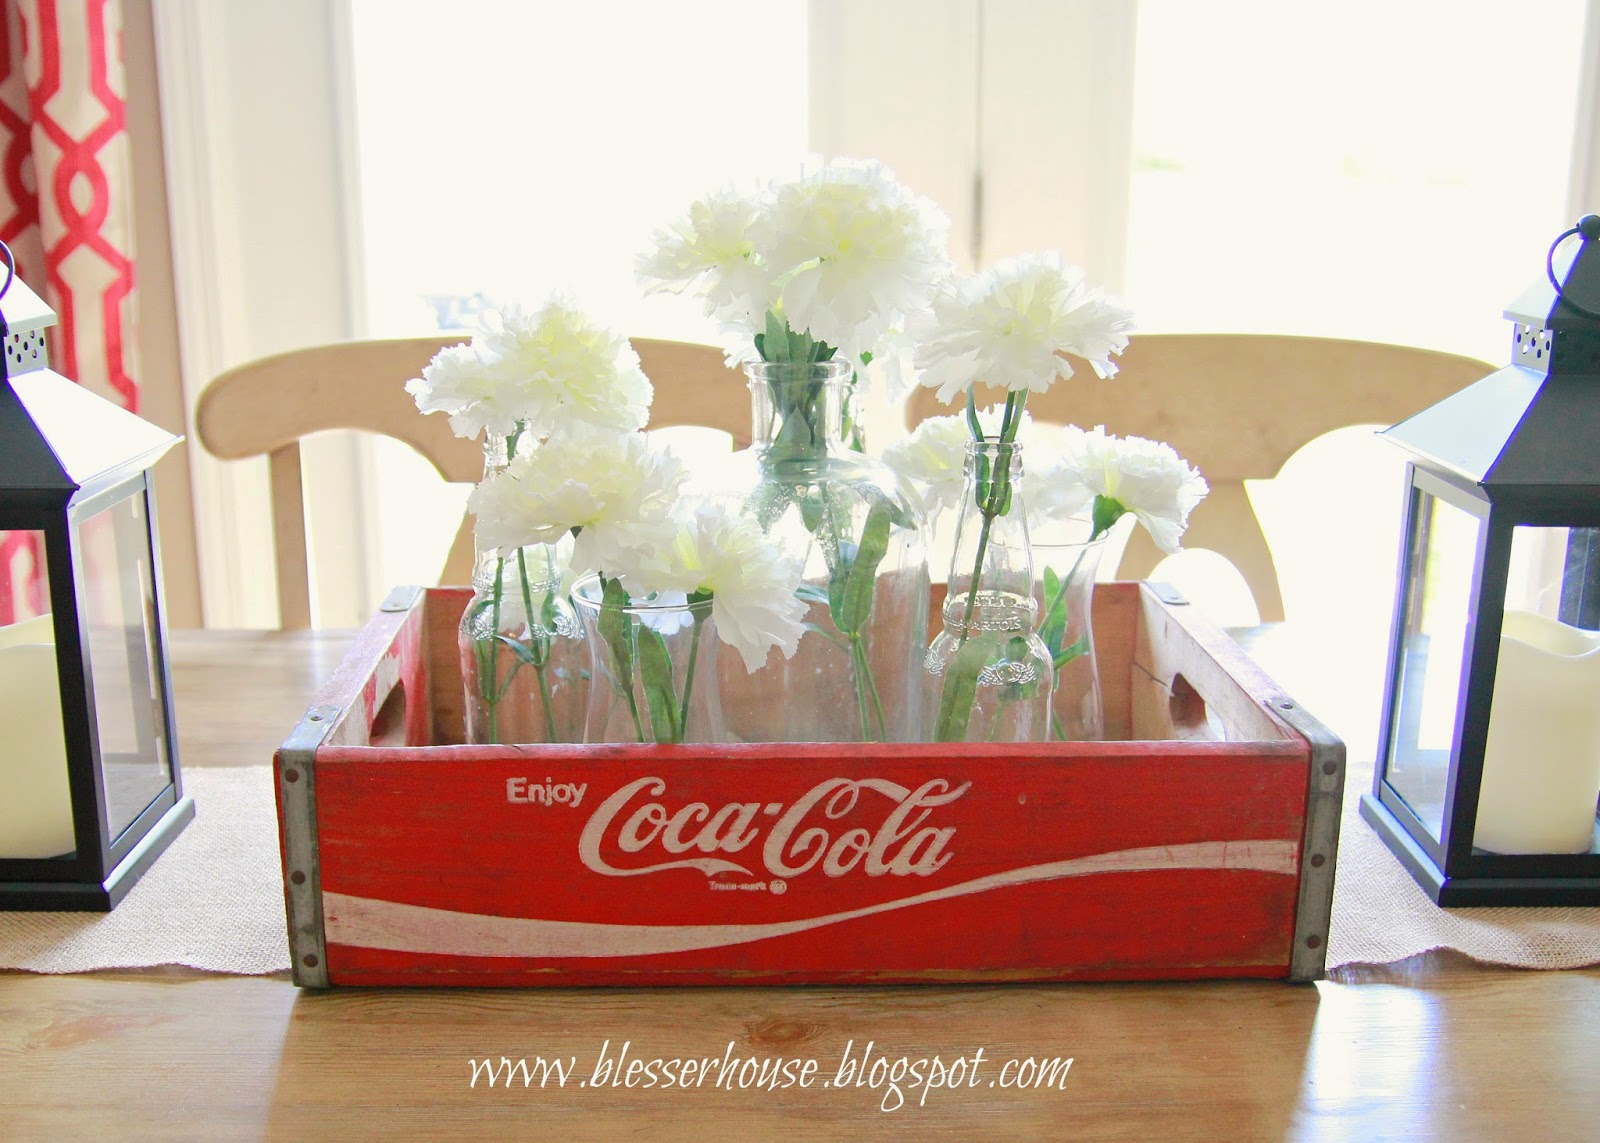 fd932024f8e5 Goodwill Find  Vintage Coca-Cola Crate Centerpiece